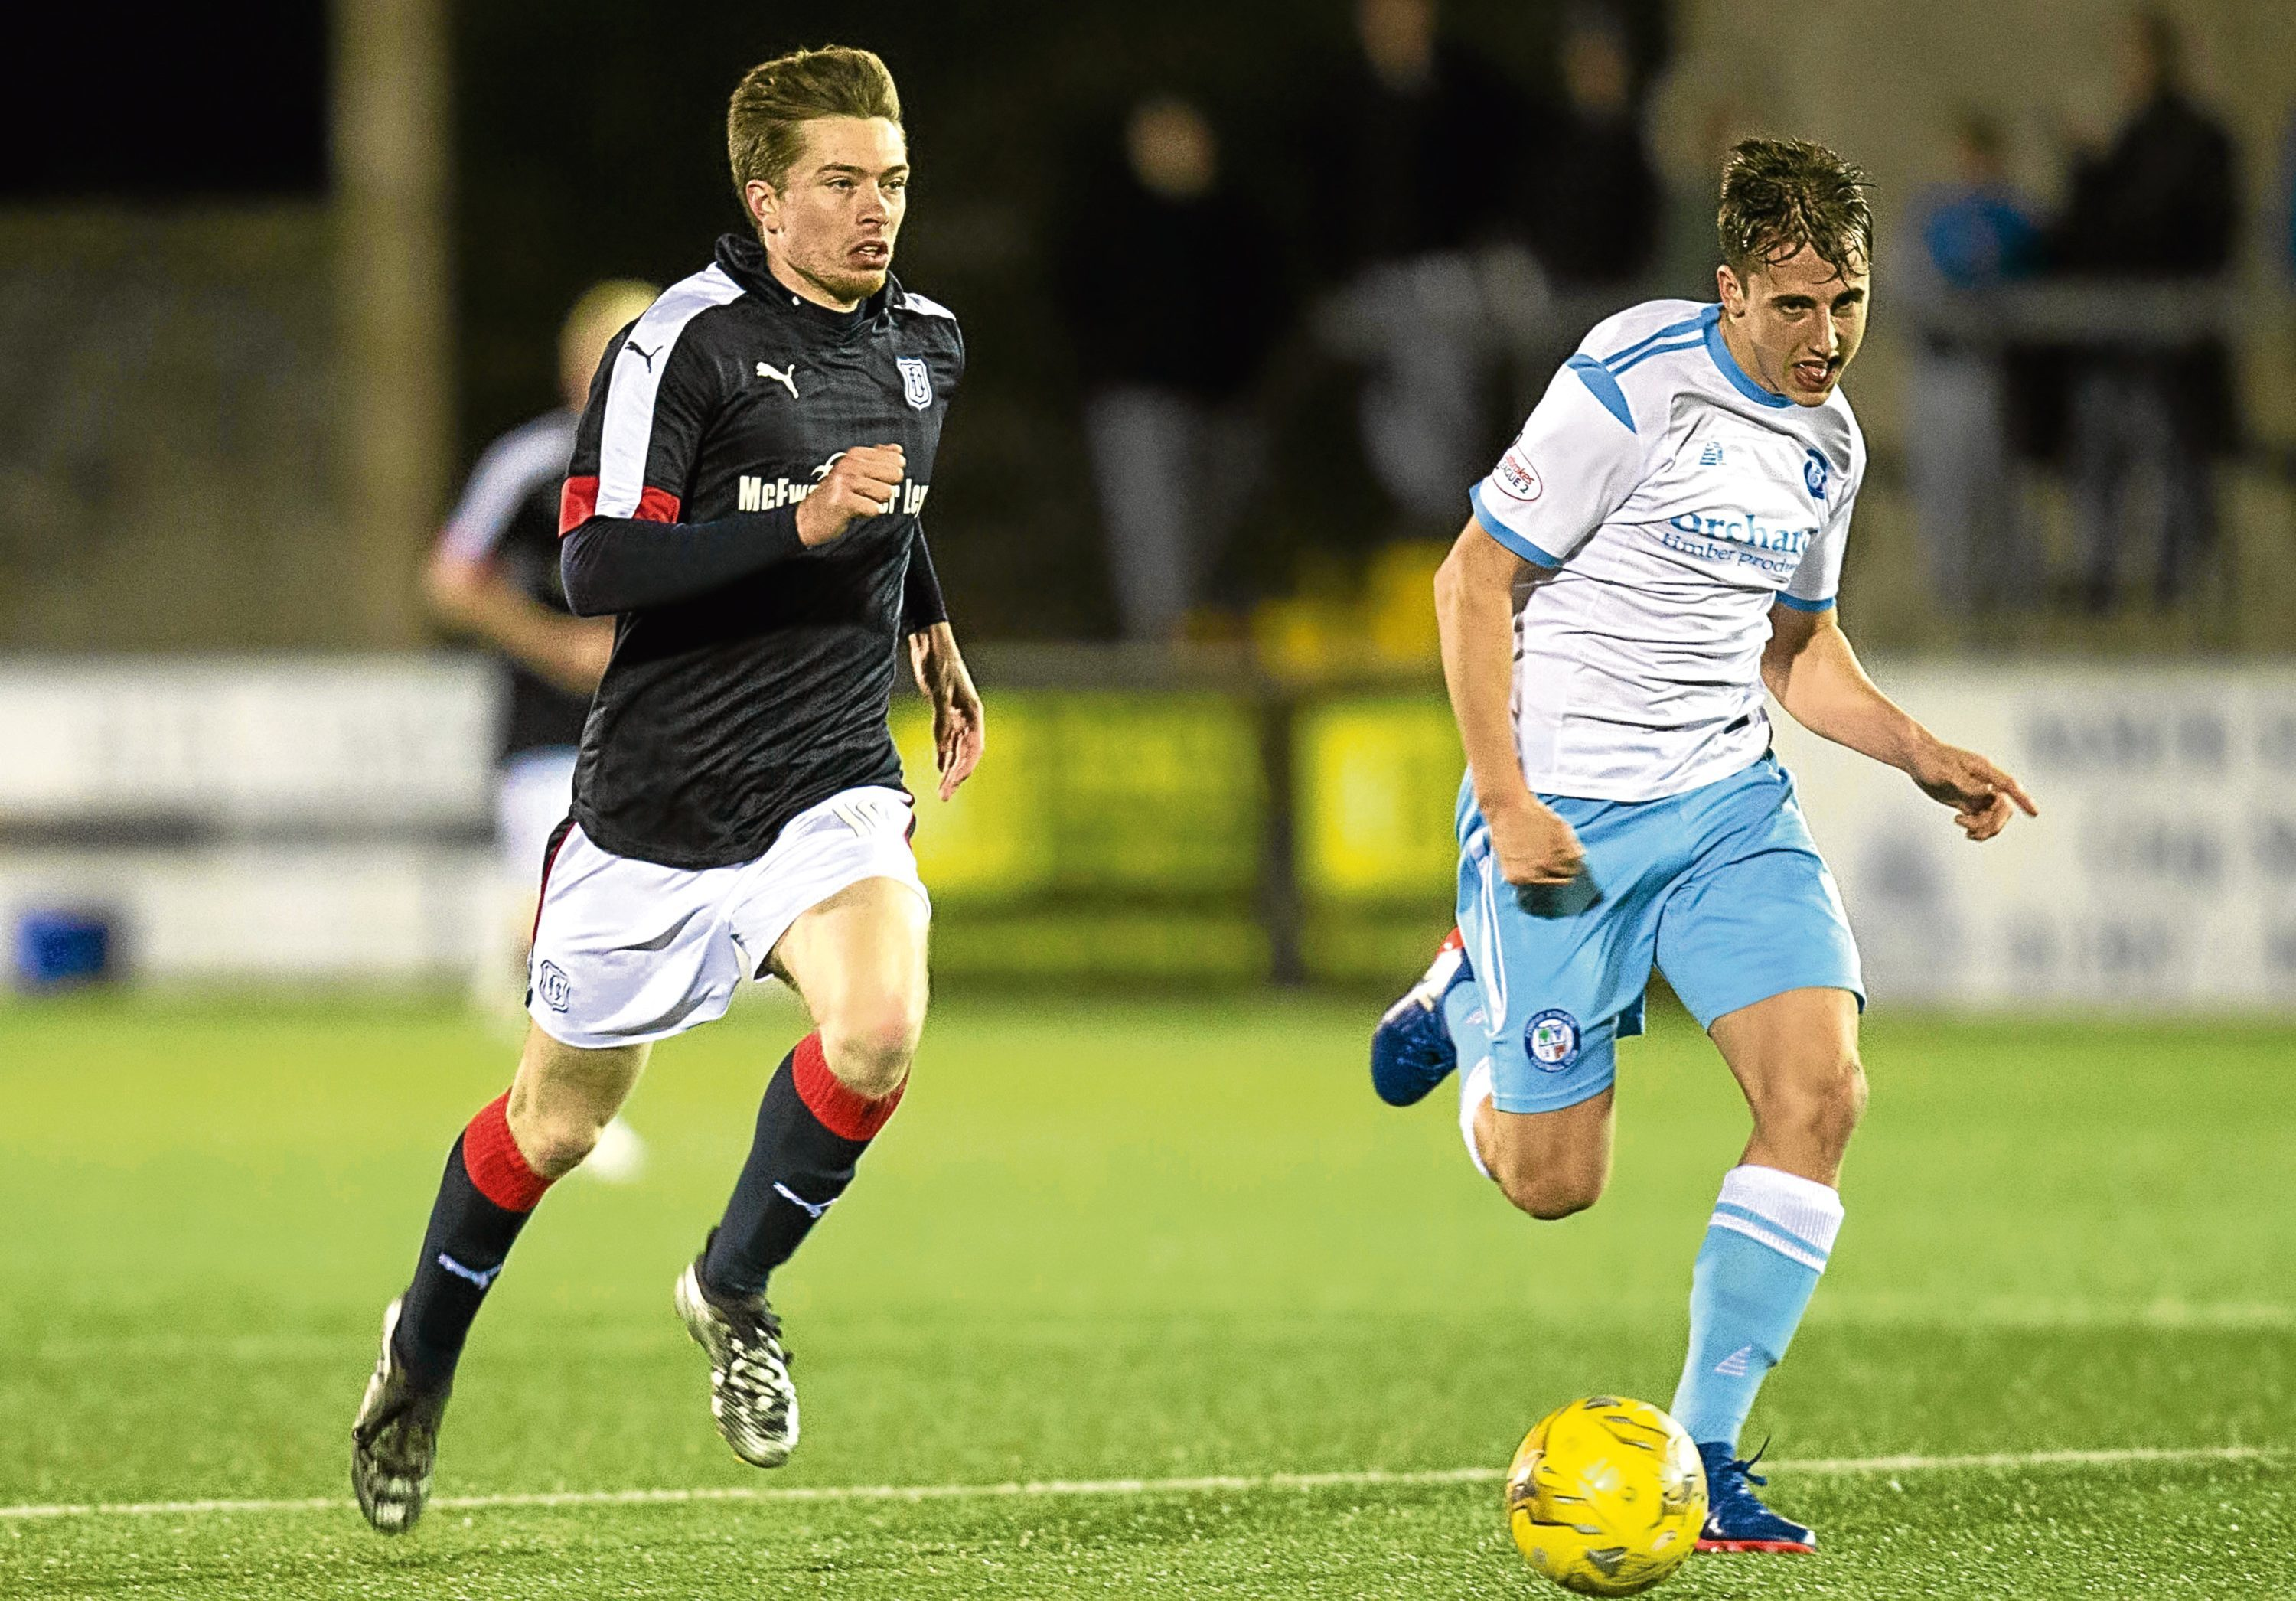 Craig Wighton played the entire 90 minutes as a Dundee XI defeated Forfar in Martyn Fotheringham's testimonial at Station Park on Tuesday night